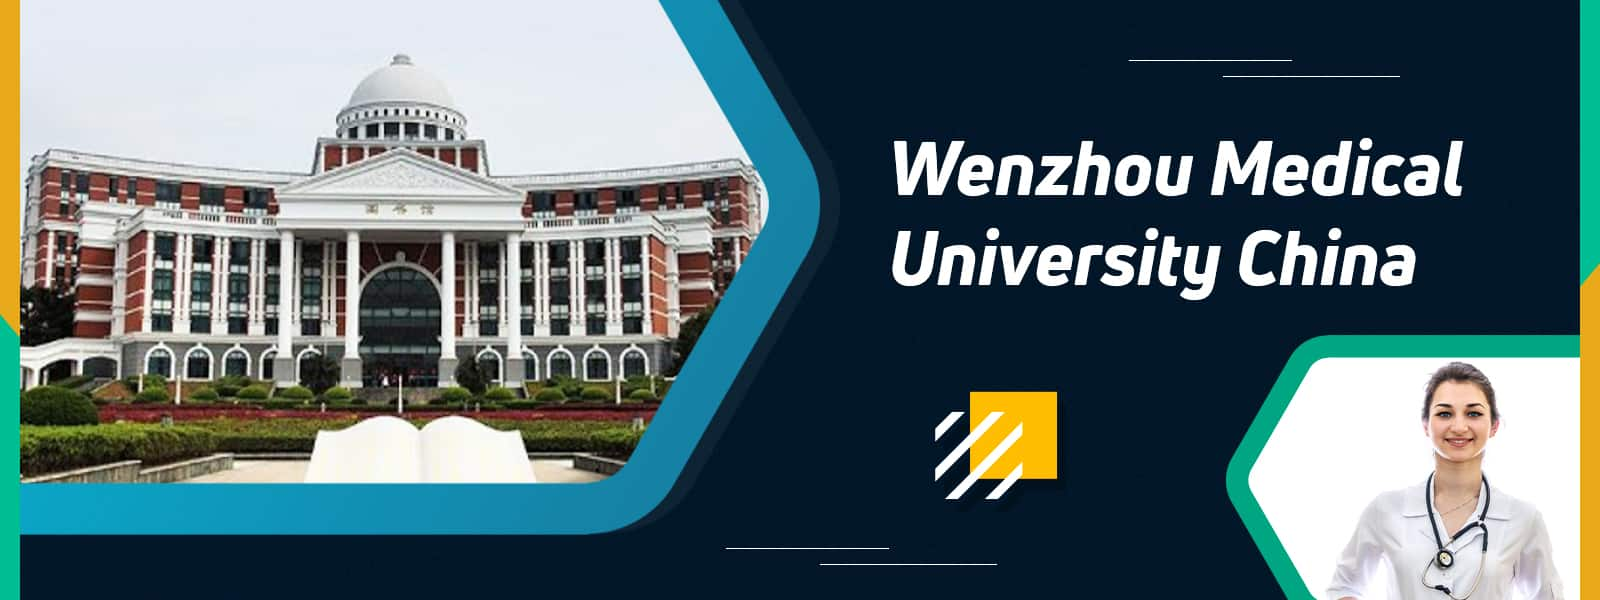 Wenzhou Medical University China